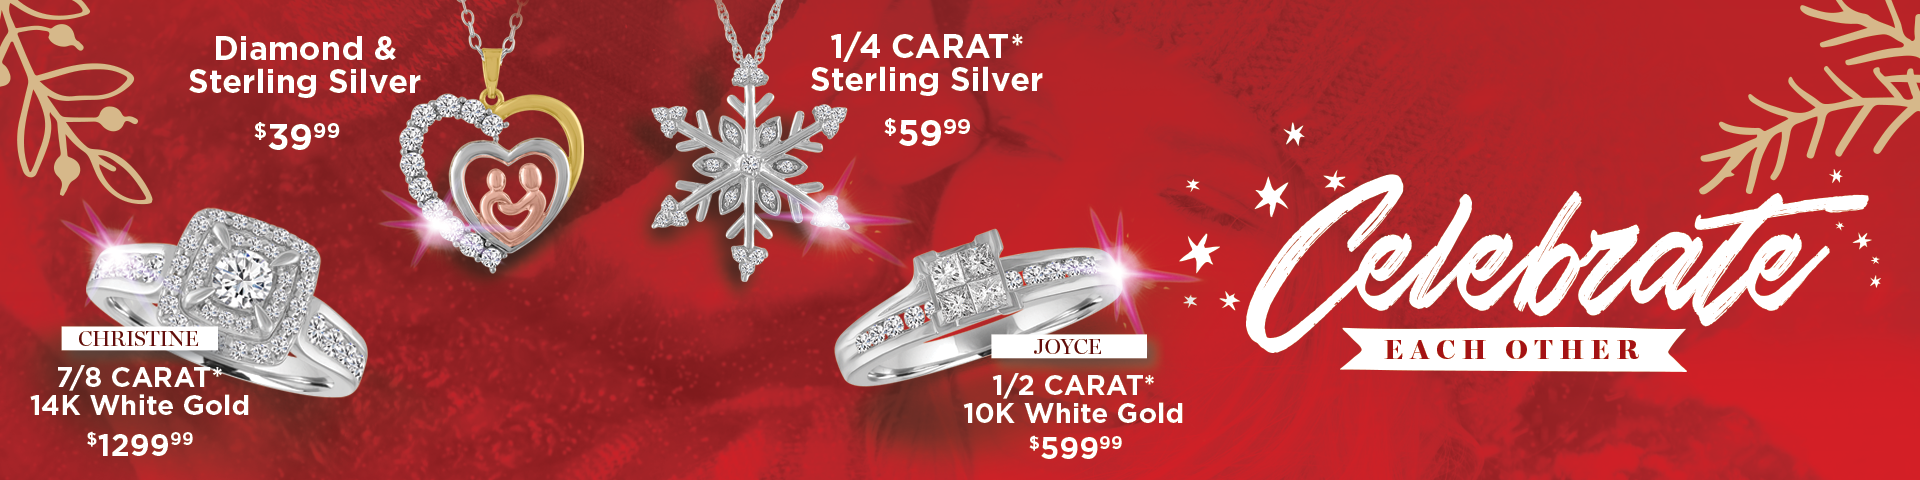 Kings Jewelry Christmas Deals